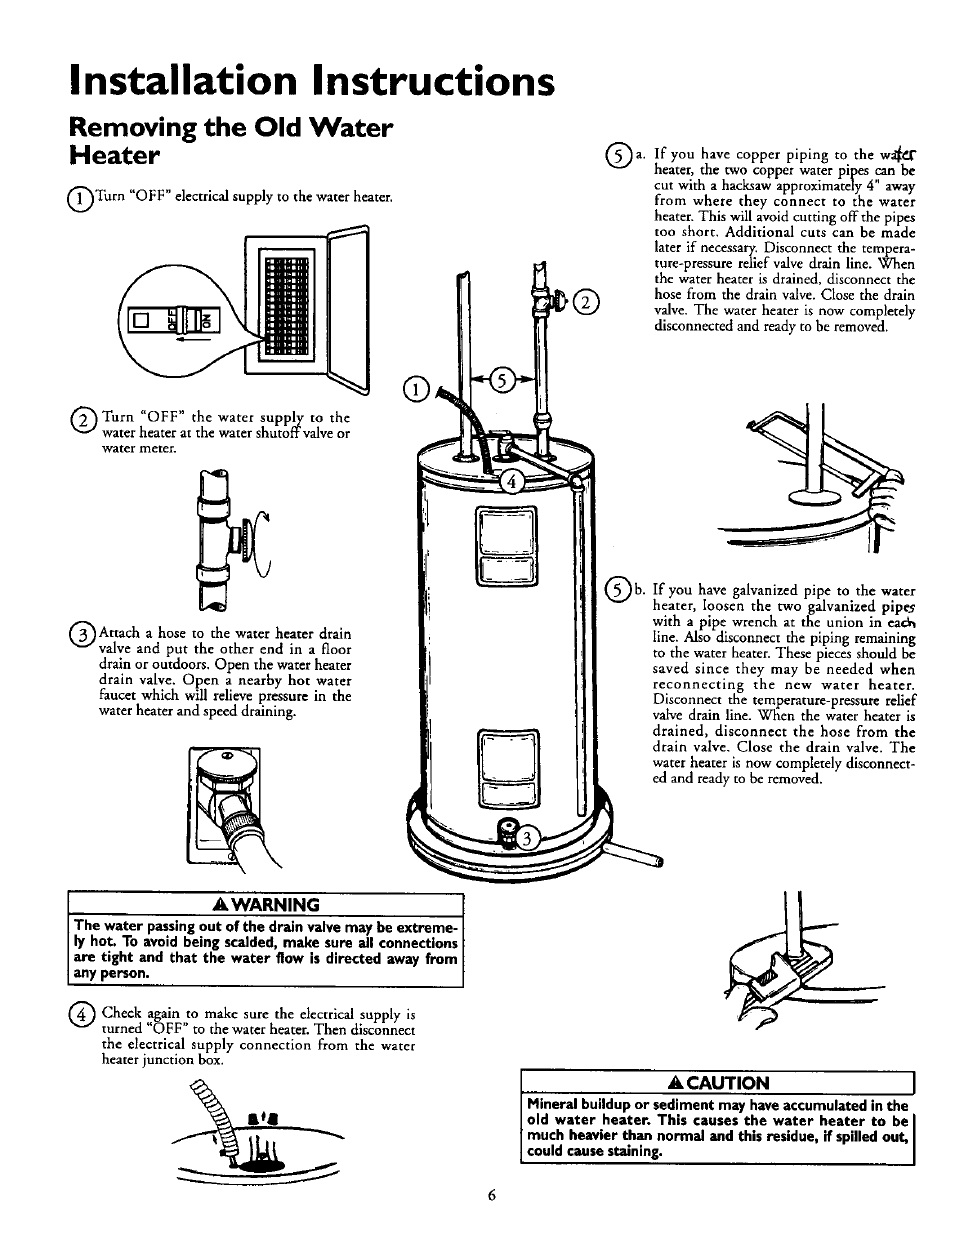 hight resolution of removing the old water heater a warning a caution installation instructions kenmore